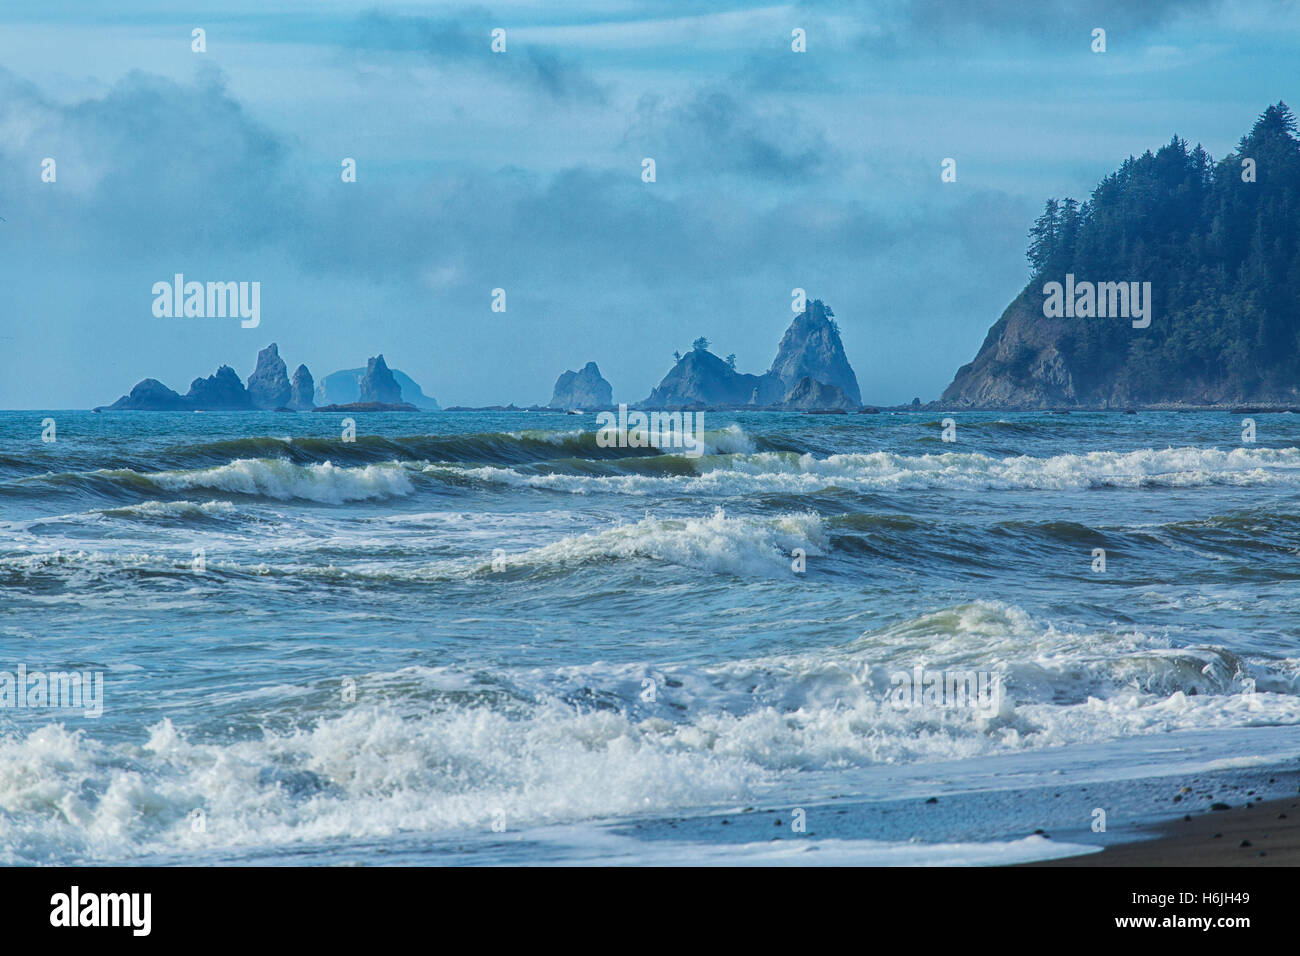 Rialto Beach La Push Washington USA Olympic National Park Stormy Weather